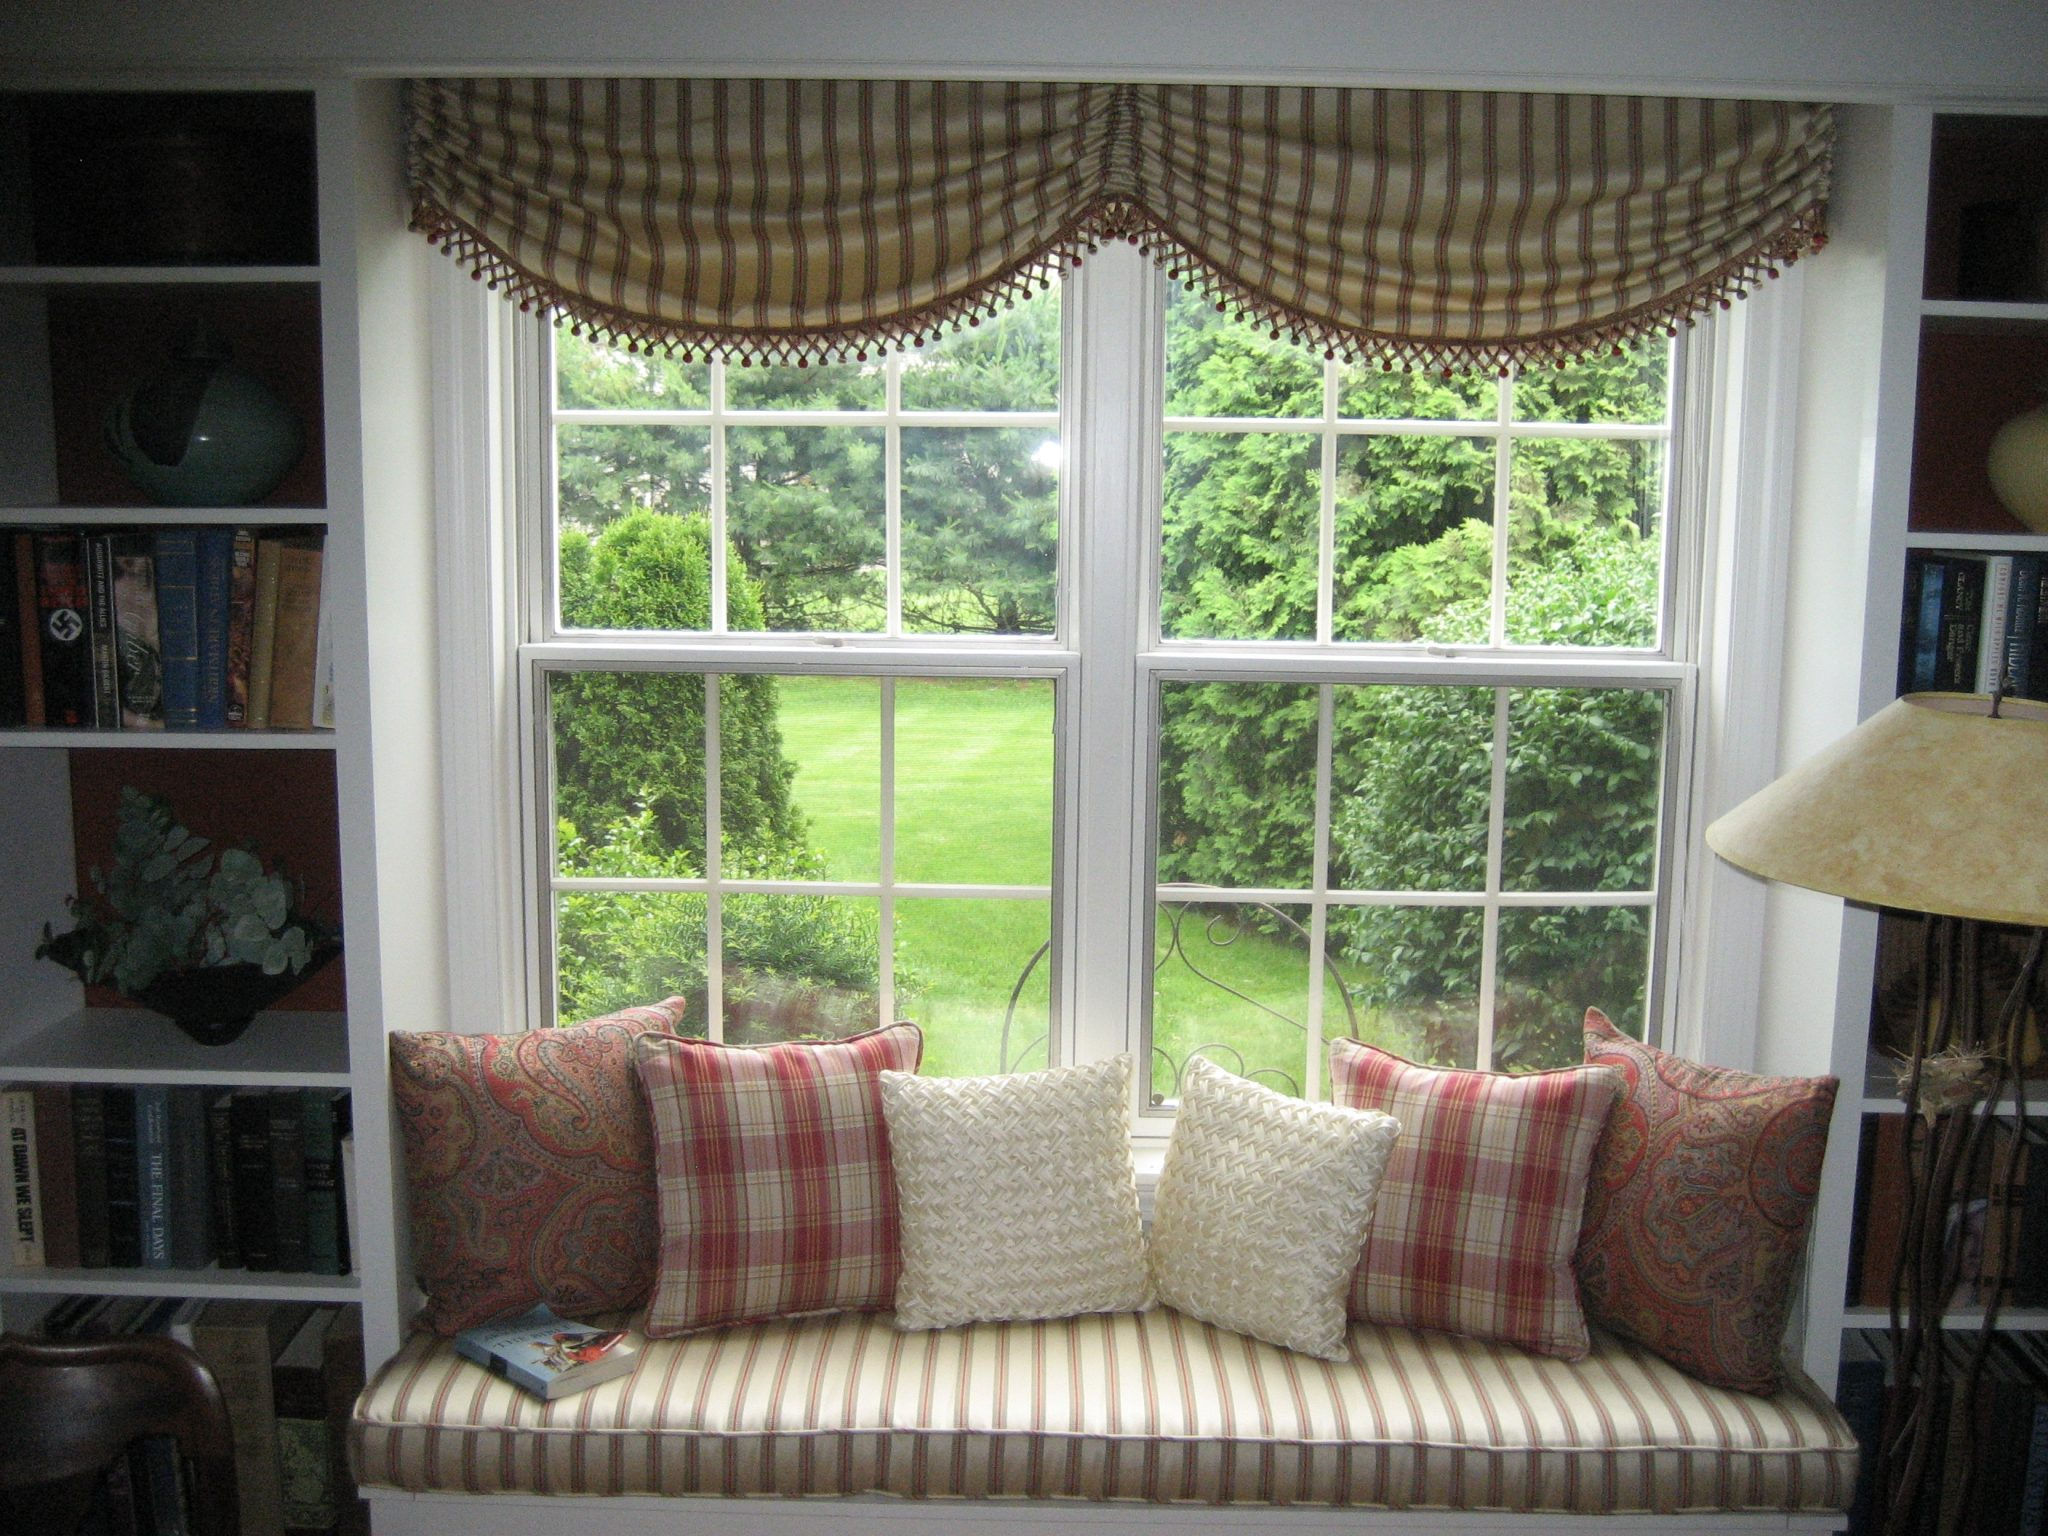 Window-seat-reading-nook-with-a-scenic-view